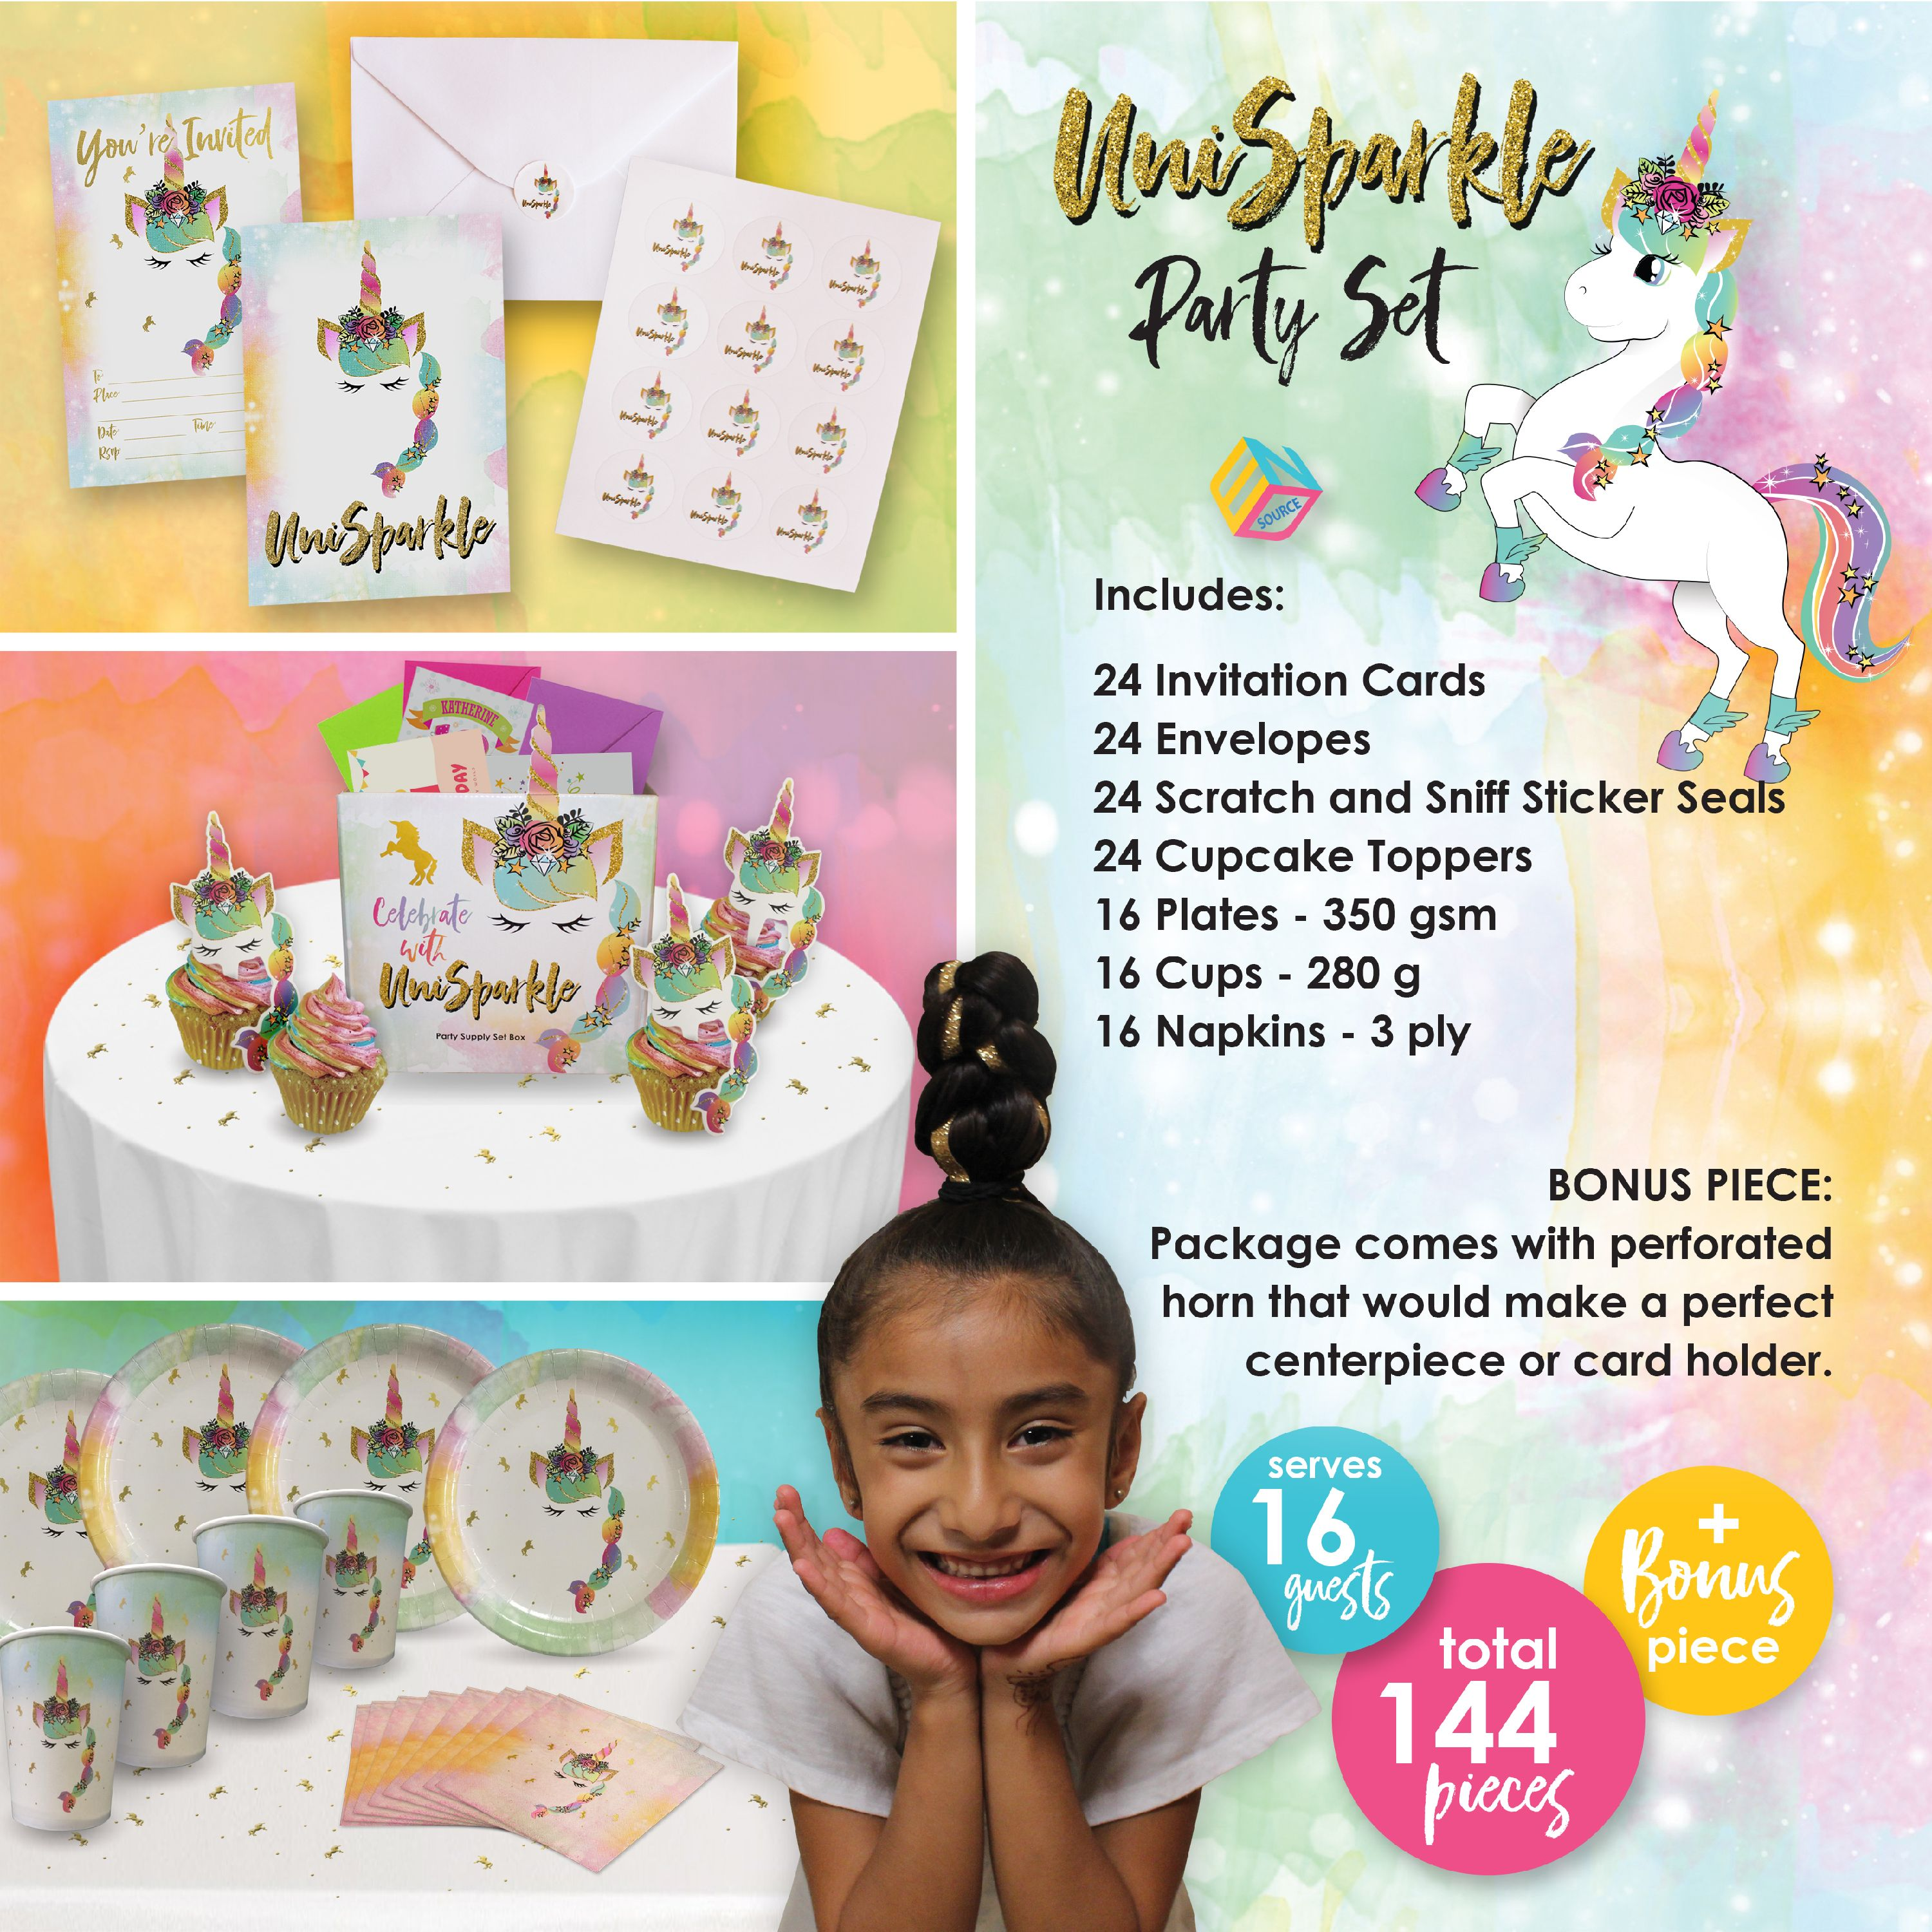 Cupcake Toppers Cups Scratch and Sniff Sticker Seals Unicorn Party Supplies| Invitation Cards w//Envelope 144 pieces of Magical Decorations and Tableware Perfect for All Occasions Paper Plates Napkins